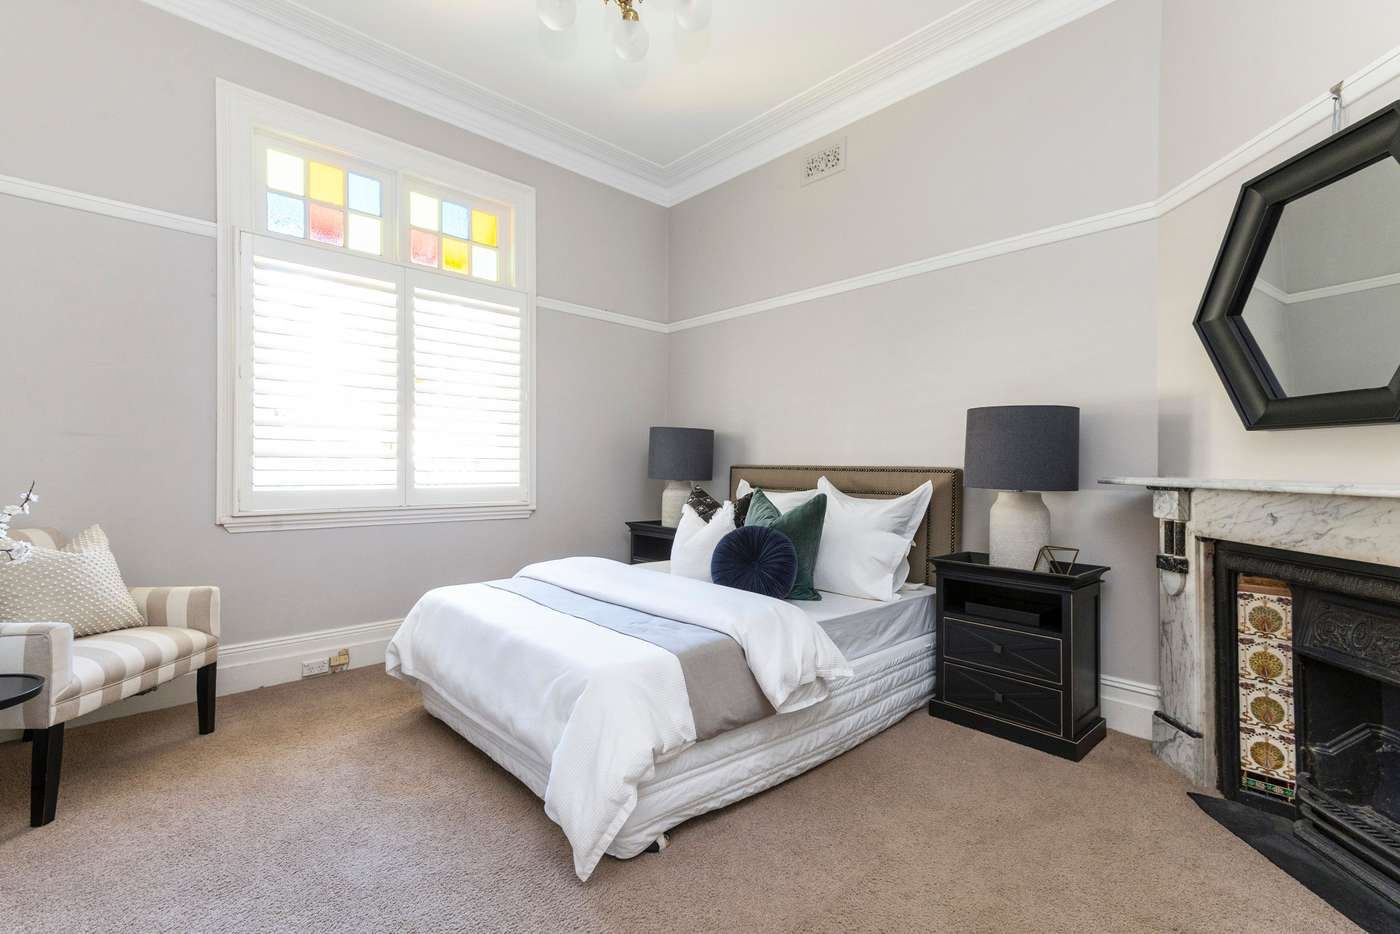 Sixth view of Homely house listing, 104 Shadforth Street, Mosman NSW 2088